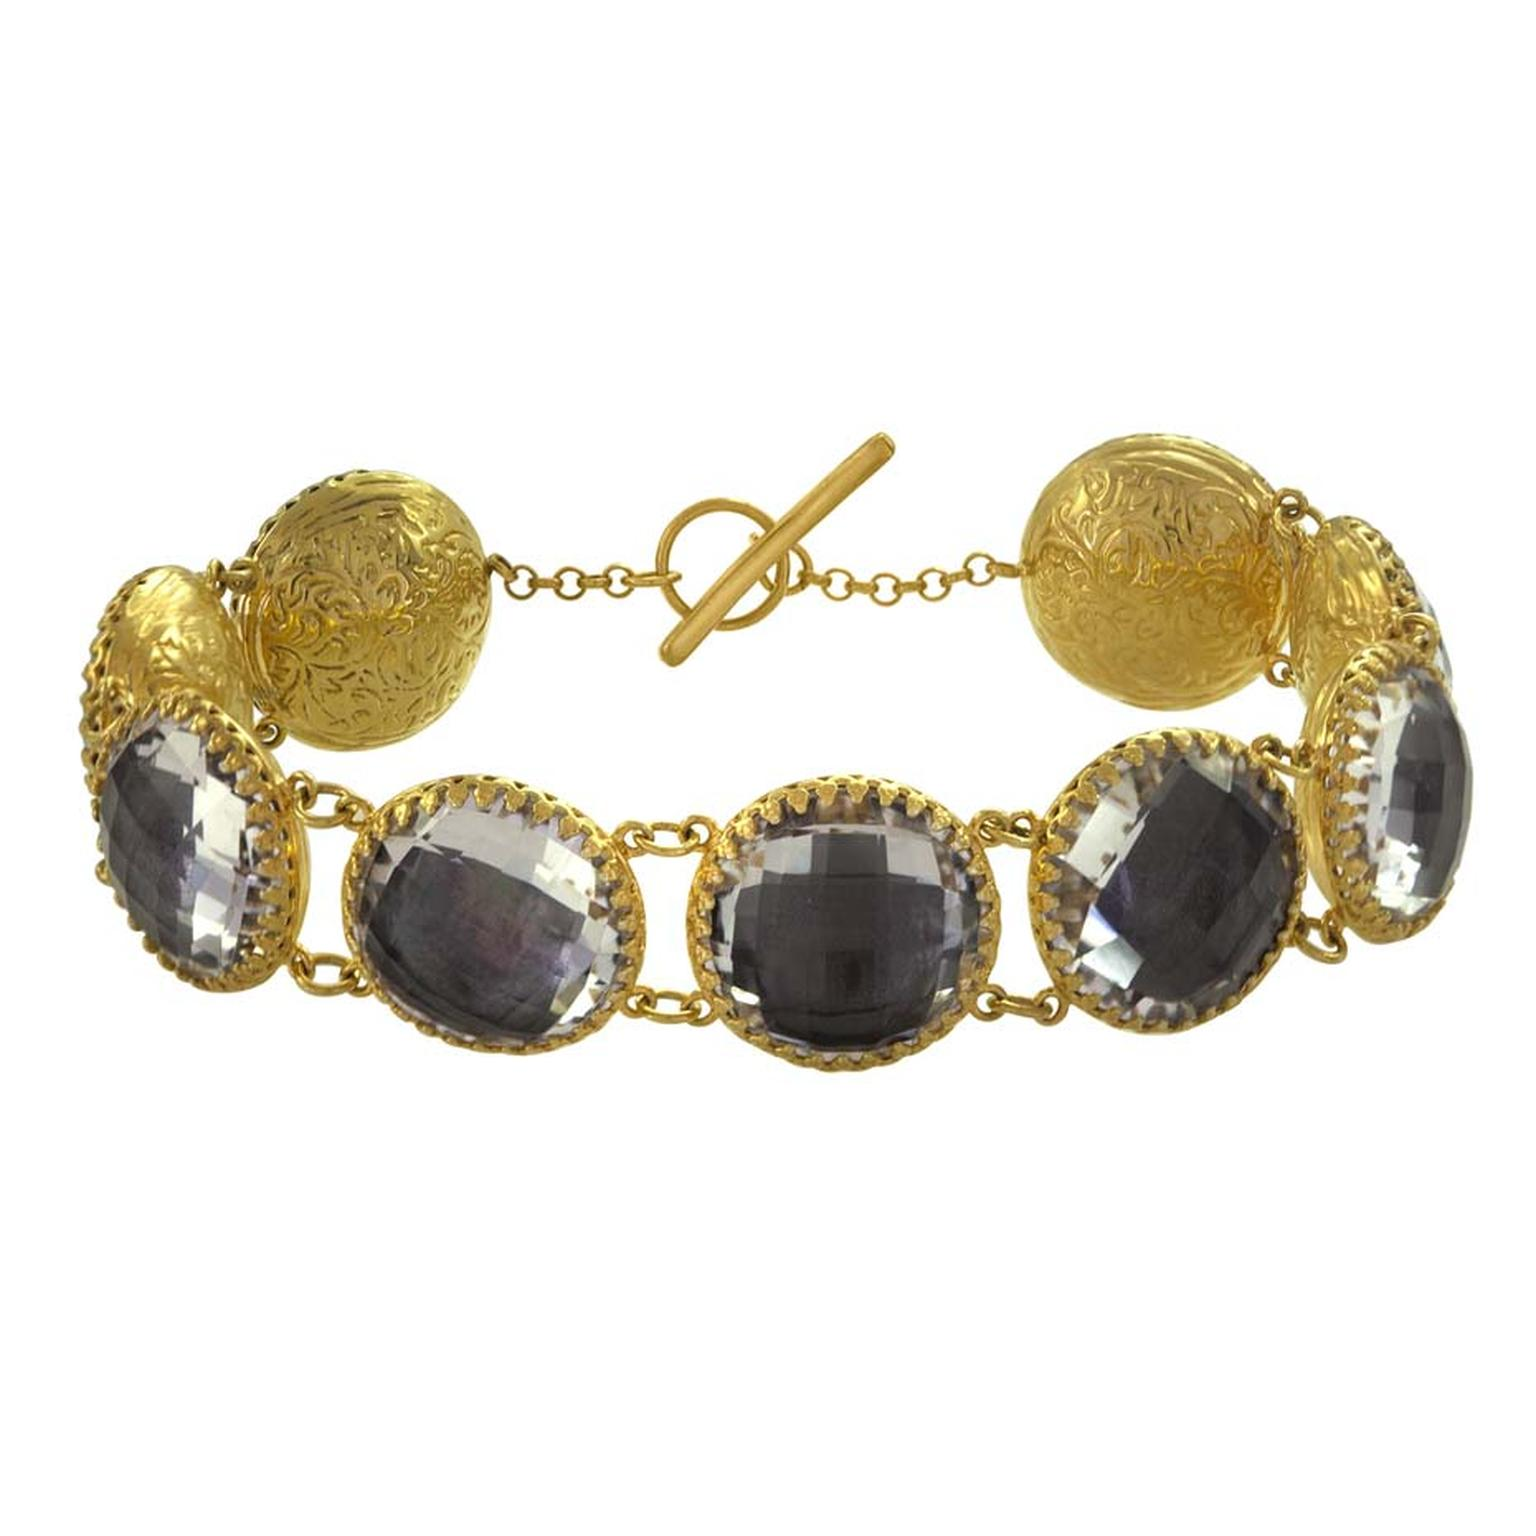 Larkspur & Hawk Olivia nine-stone button white topaz bracelet in yellow gold with grey foil ($2,250).